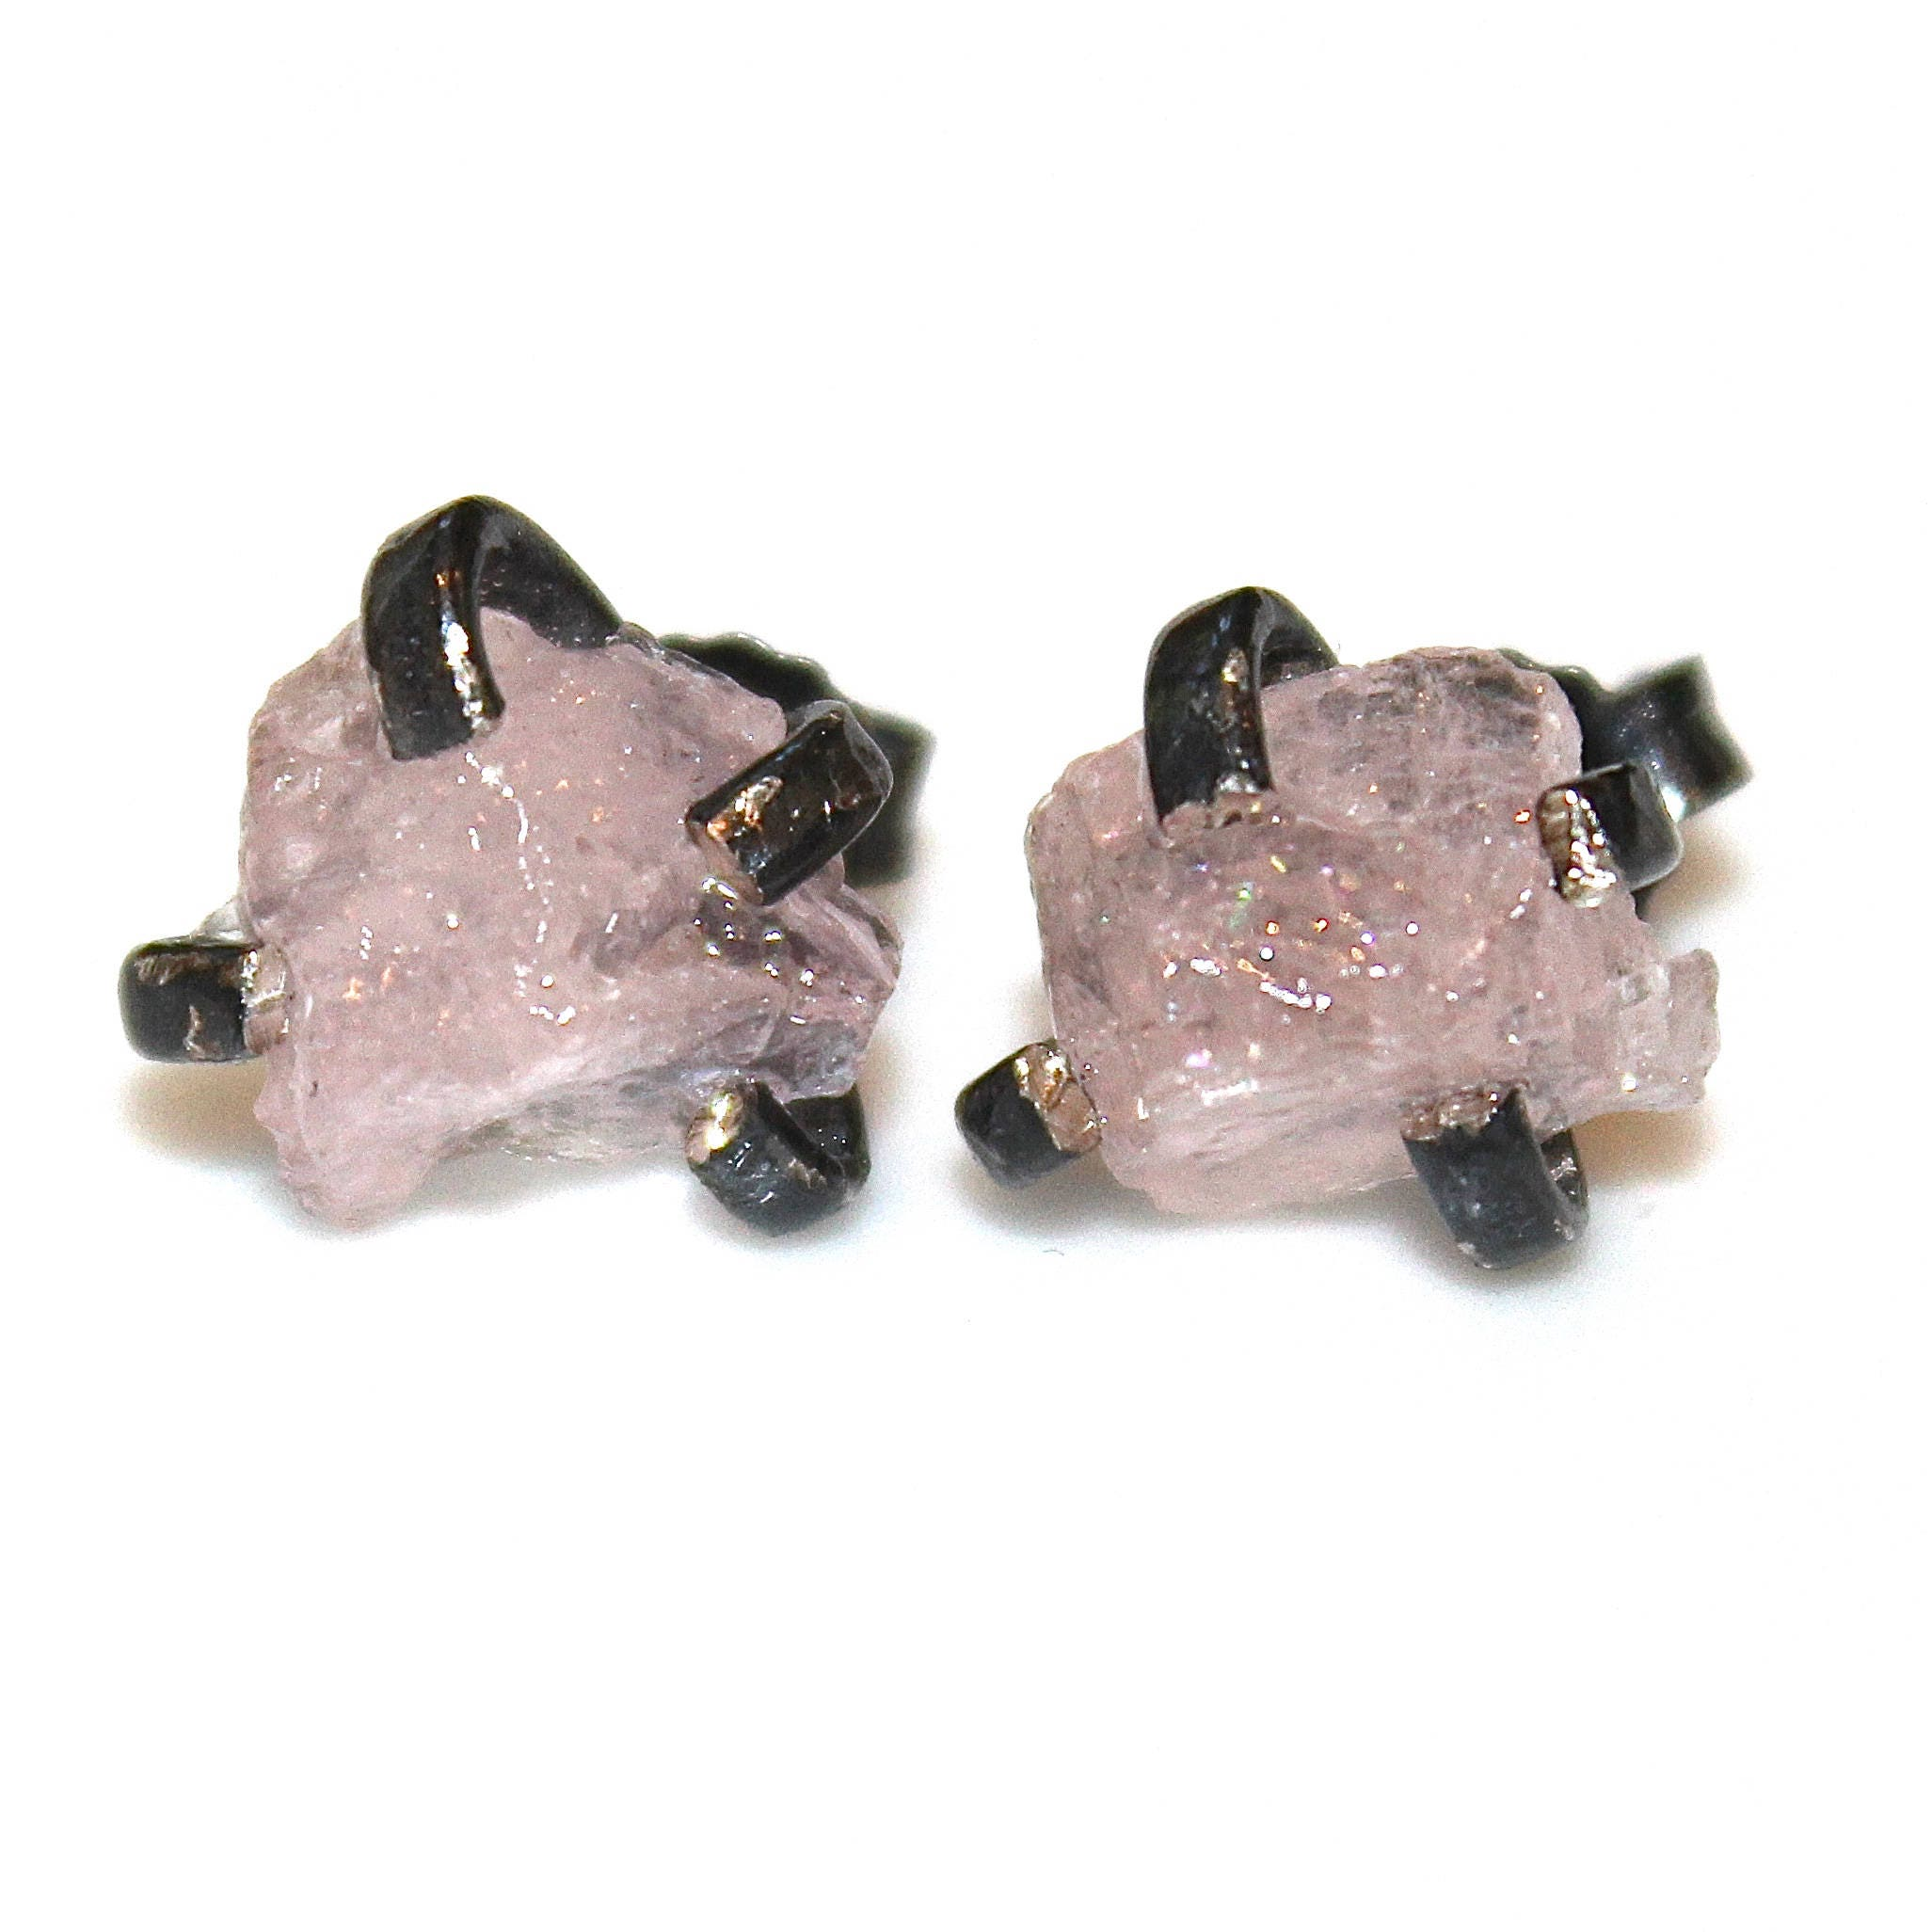 co products romance morganite diamond halos s earrings finejewelry with stud